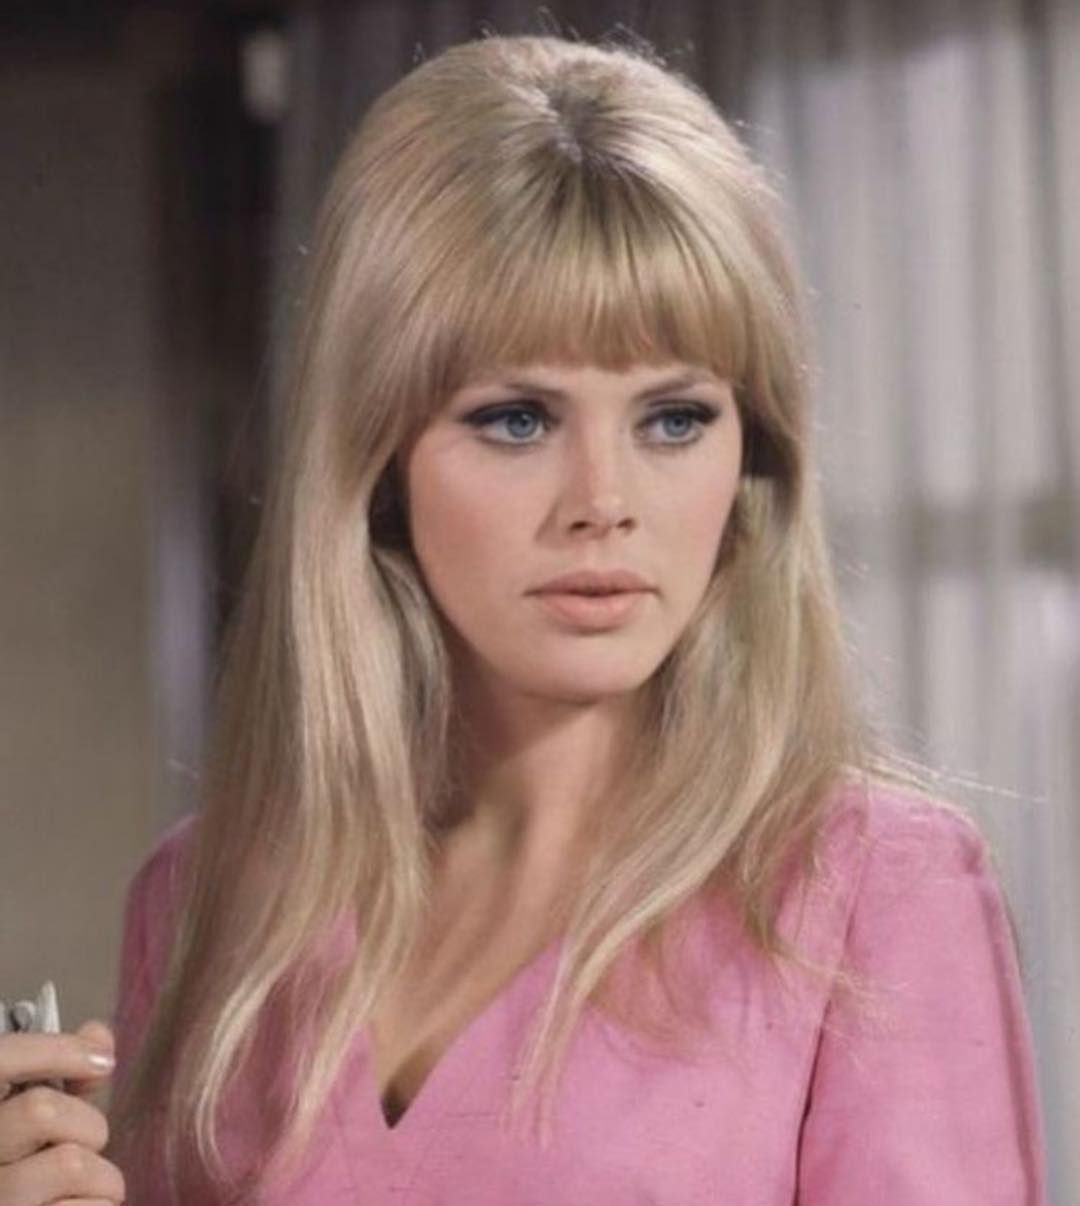 Pin by . on قديم الزمان (With images) | 60s hair, Vintage ...